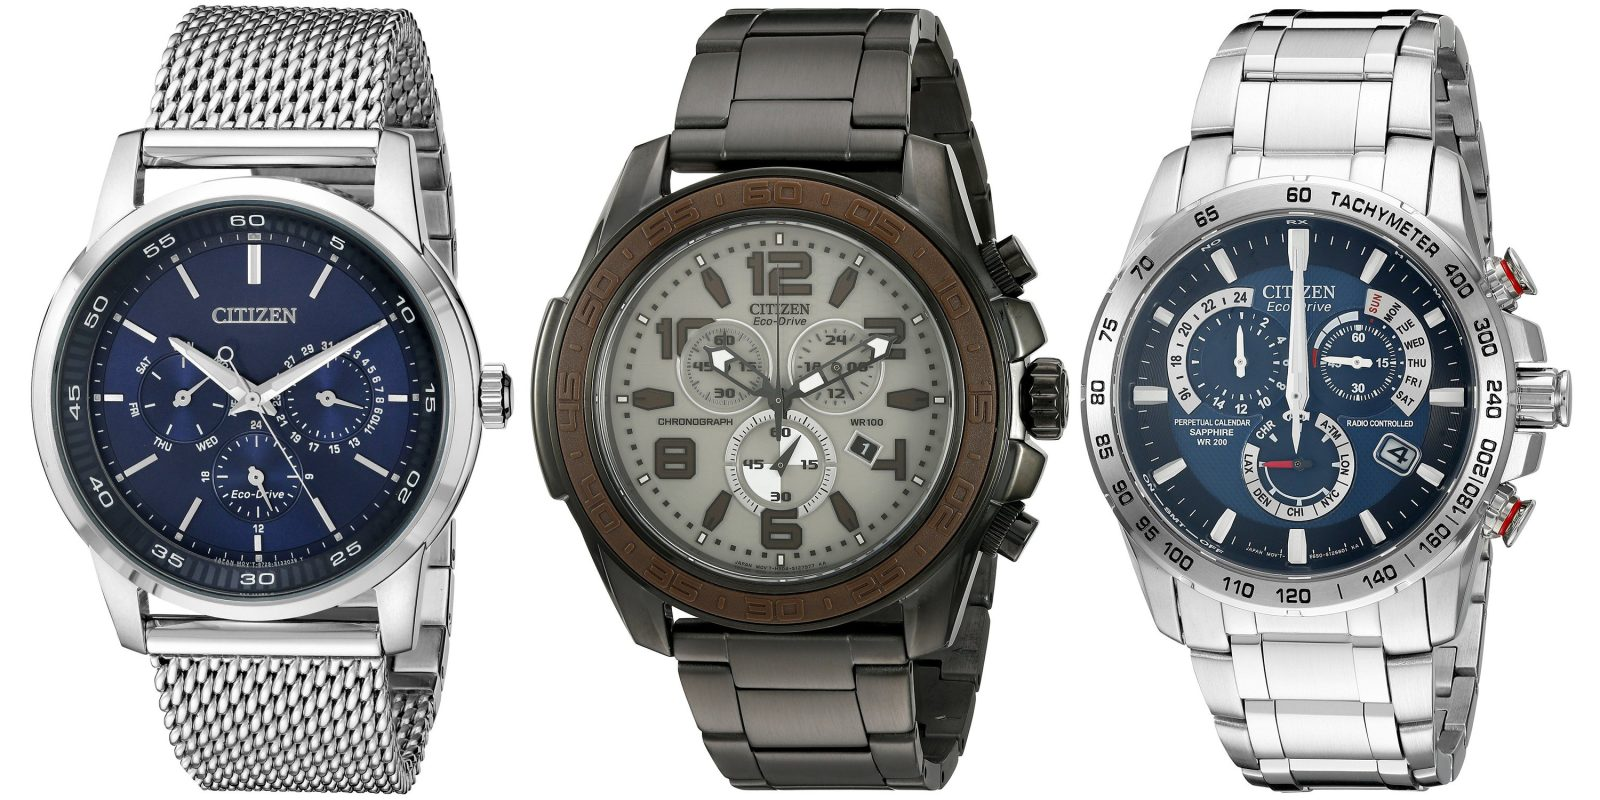 d6f63e715 Amazon Gold Box – 40% off Citizen Watches: Eco-Drive Stainless Steel $185